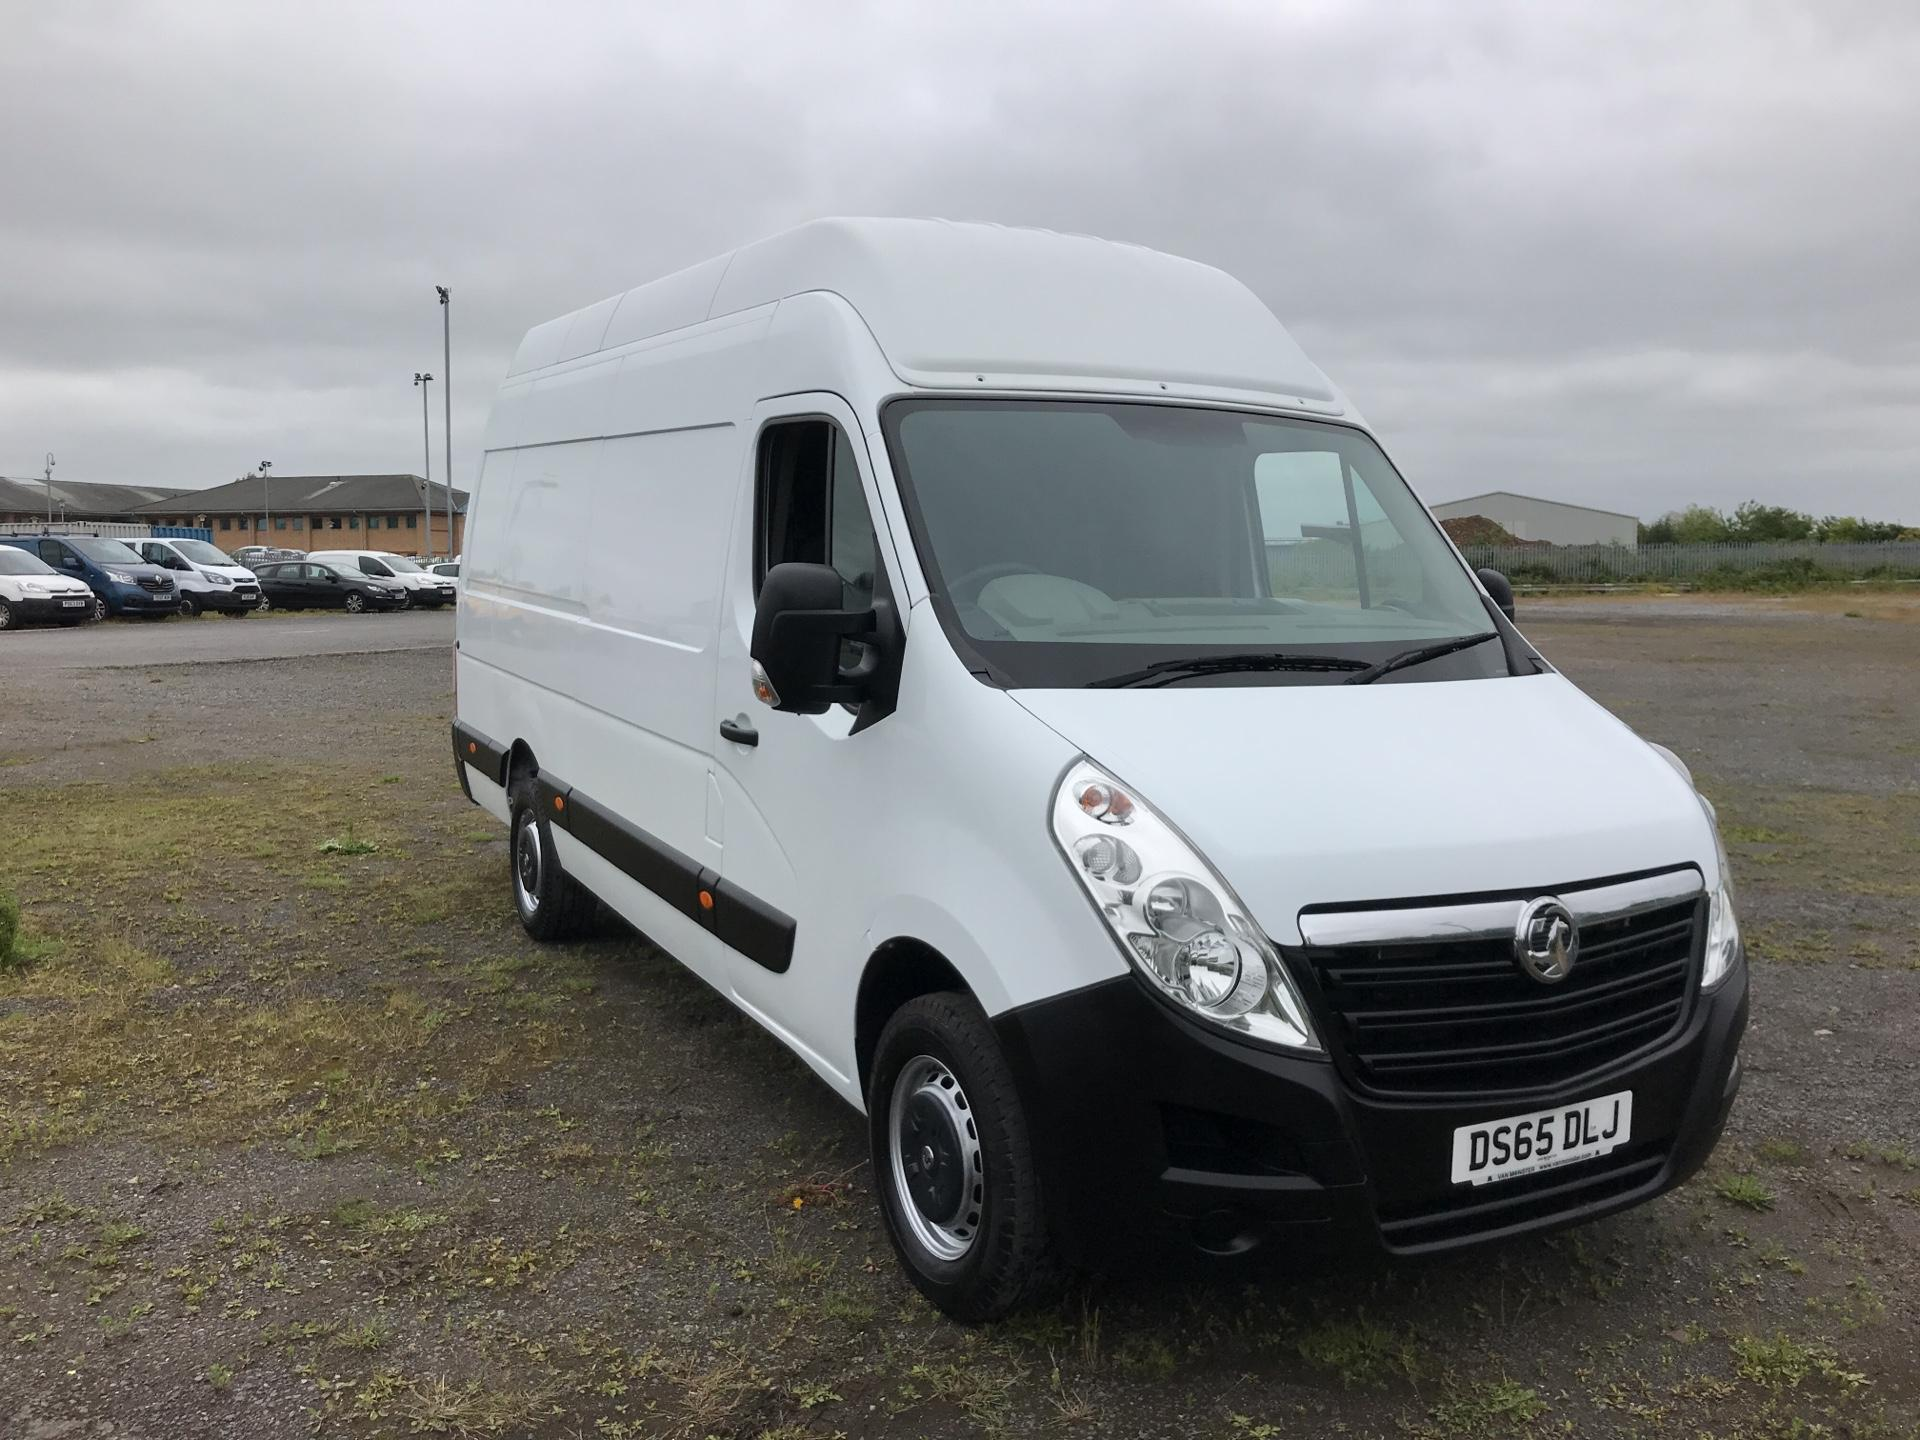 2015 Vauxhall Movano 2.3 Cdti H3 Van 125Ps *VALUE RANGE VEHICLE - CONDITION REFLECTED IN PRICE* (DS65DLJ)